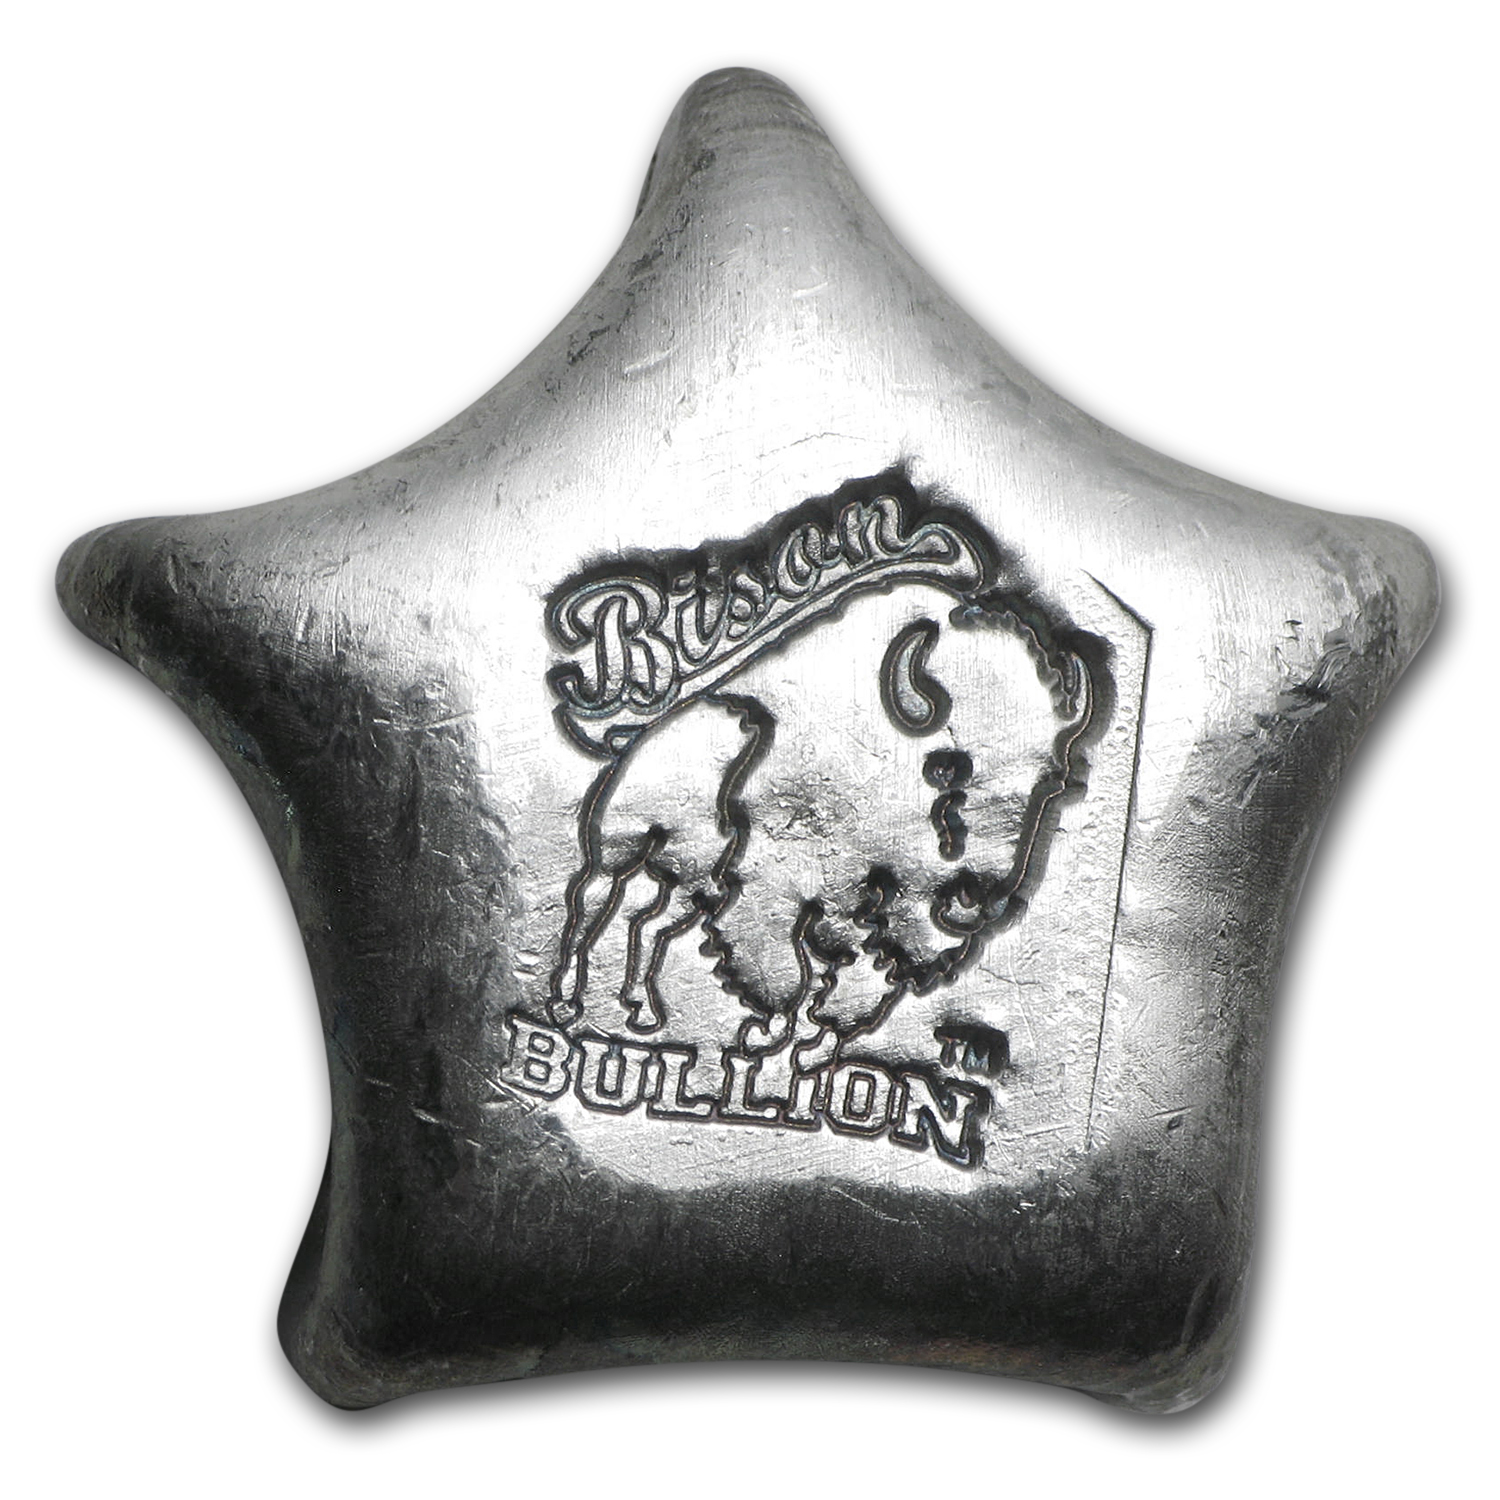 1 oz Silver Star - Bison Bullion